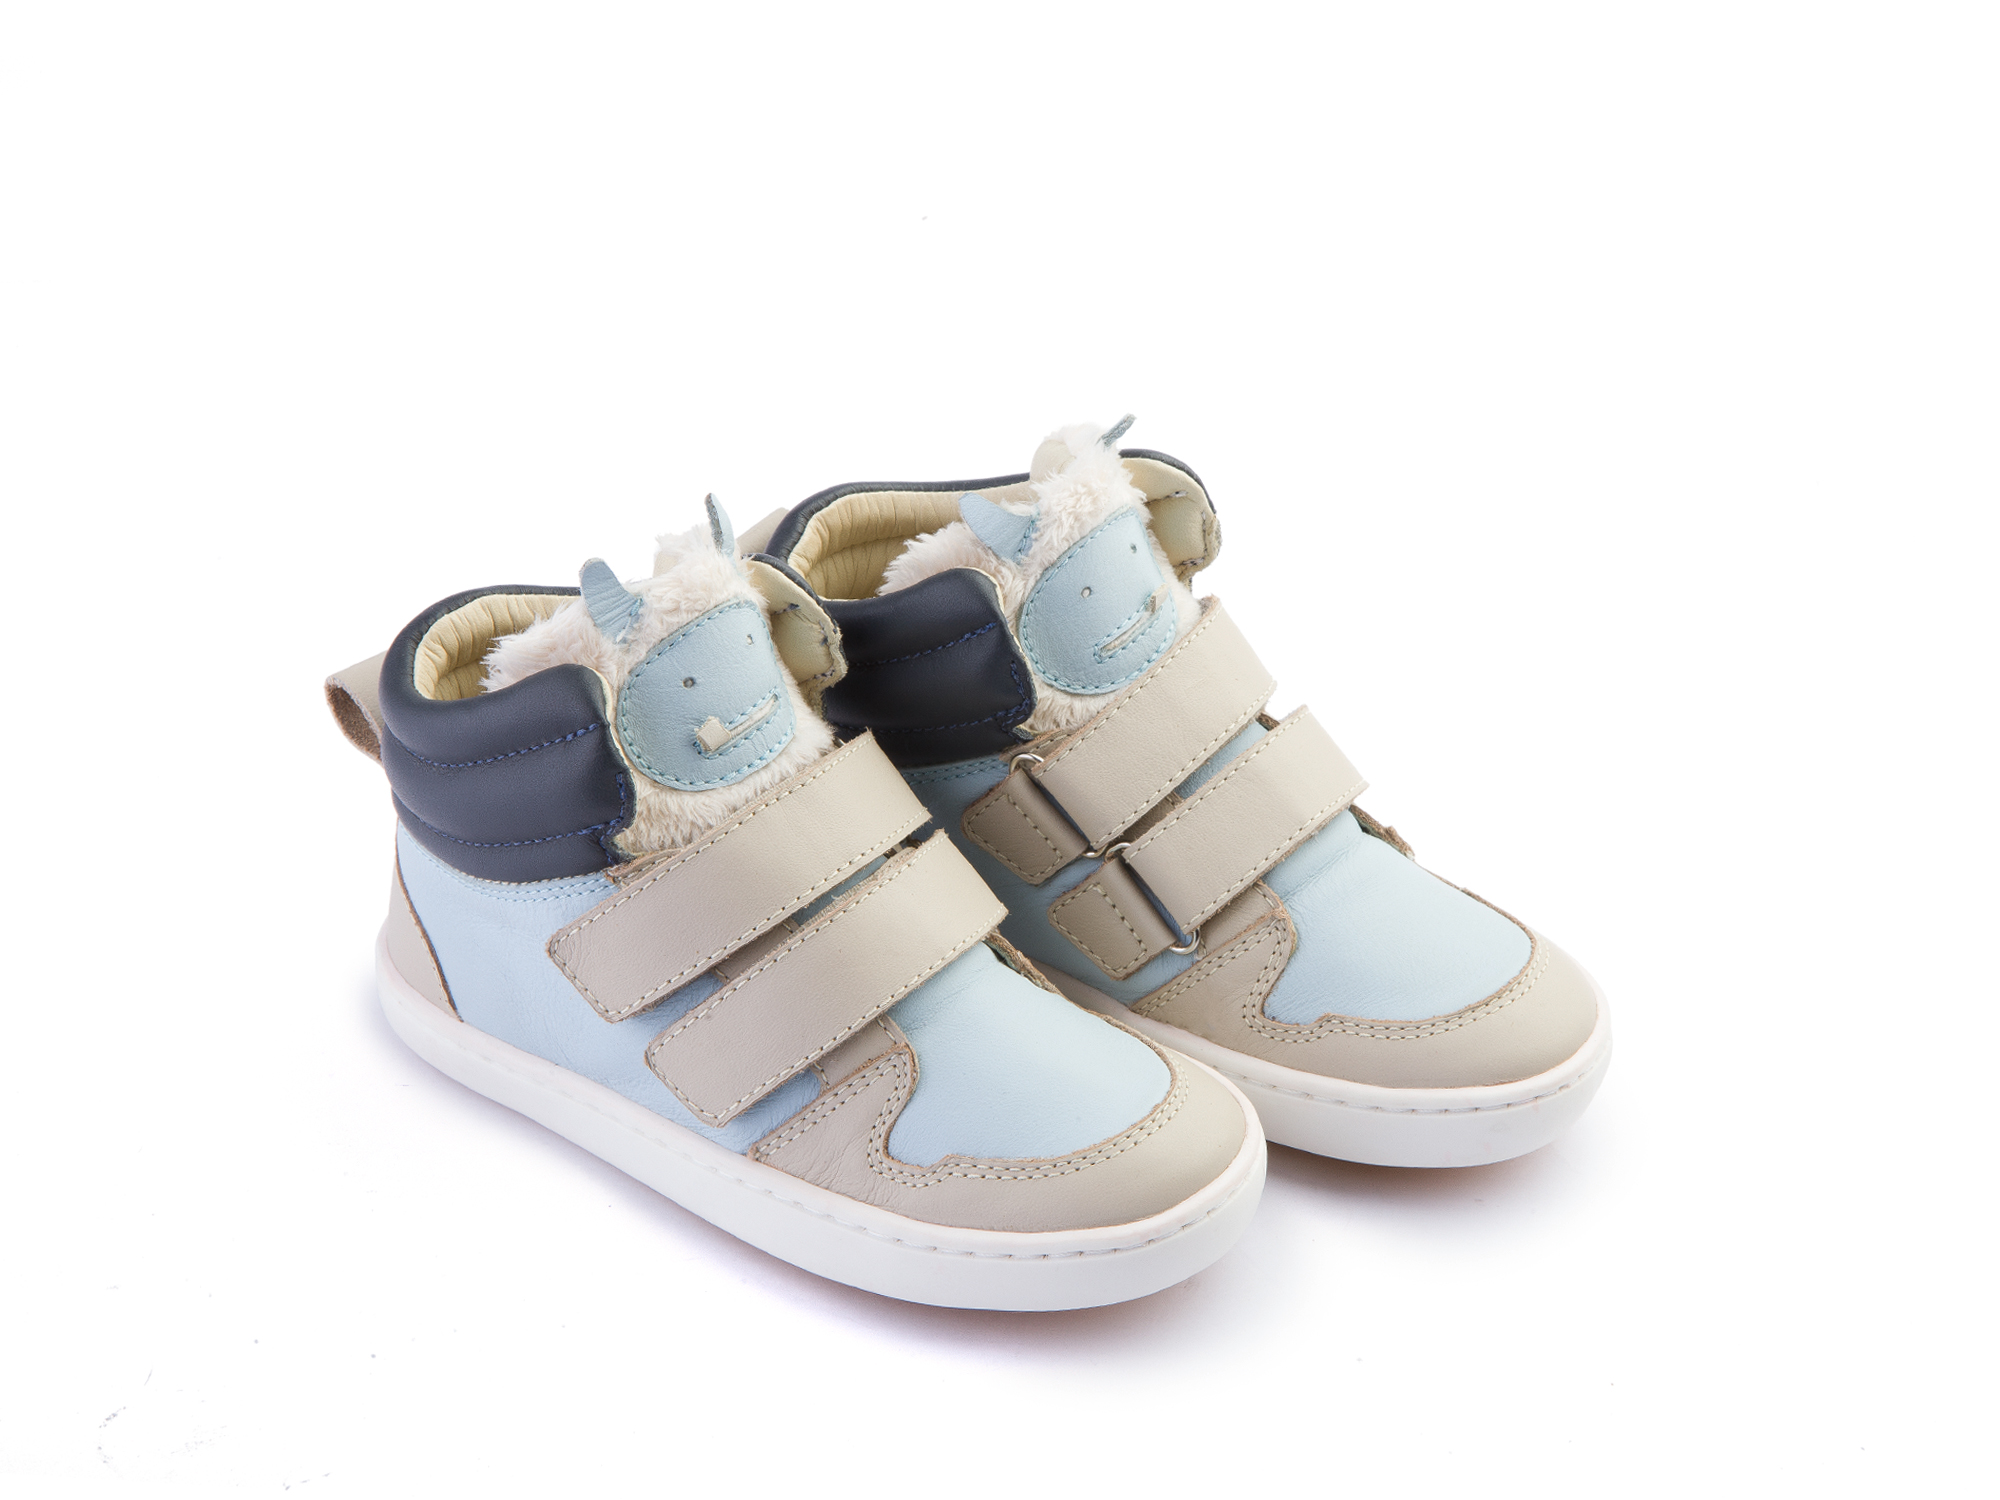 Bota Little Monster Pumice/ Baby Blue Toddler 2 à 4 anos - 0